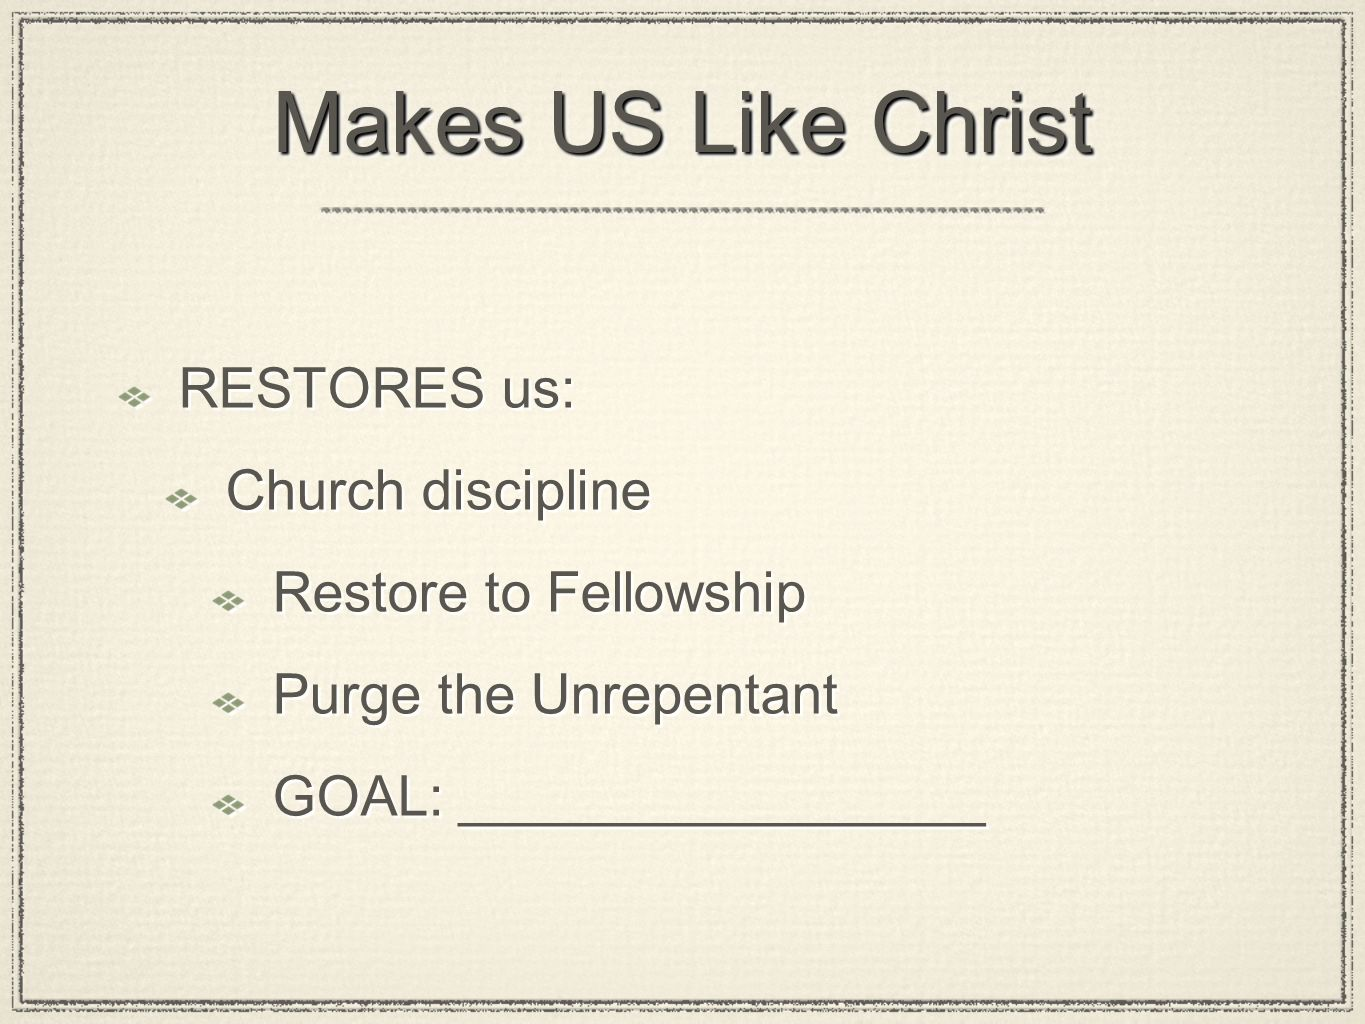 Makes US Like Christ RESTORES us: Church discipline Restore to Fellowship Purge the Unrepentant GOAL: _________________ RESTORES us: Church discipline Restore to Fellowship Purge the Unrepentant GOAL: _________________